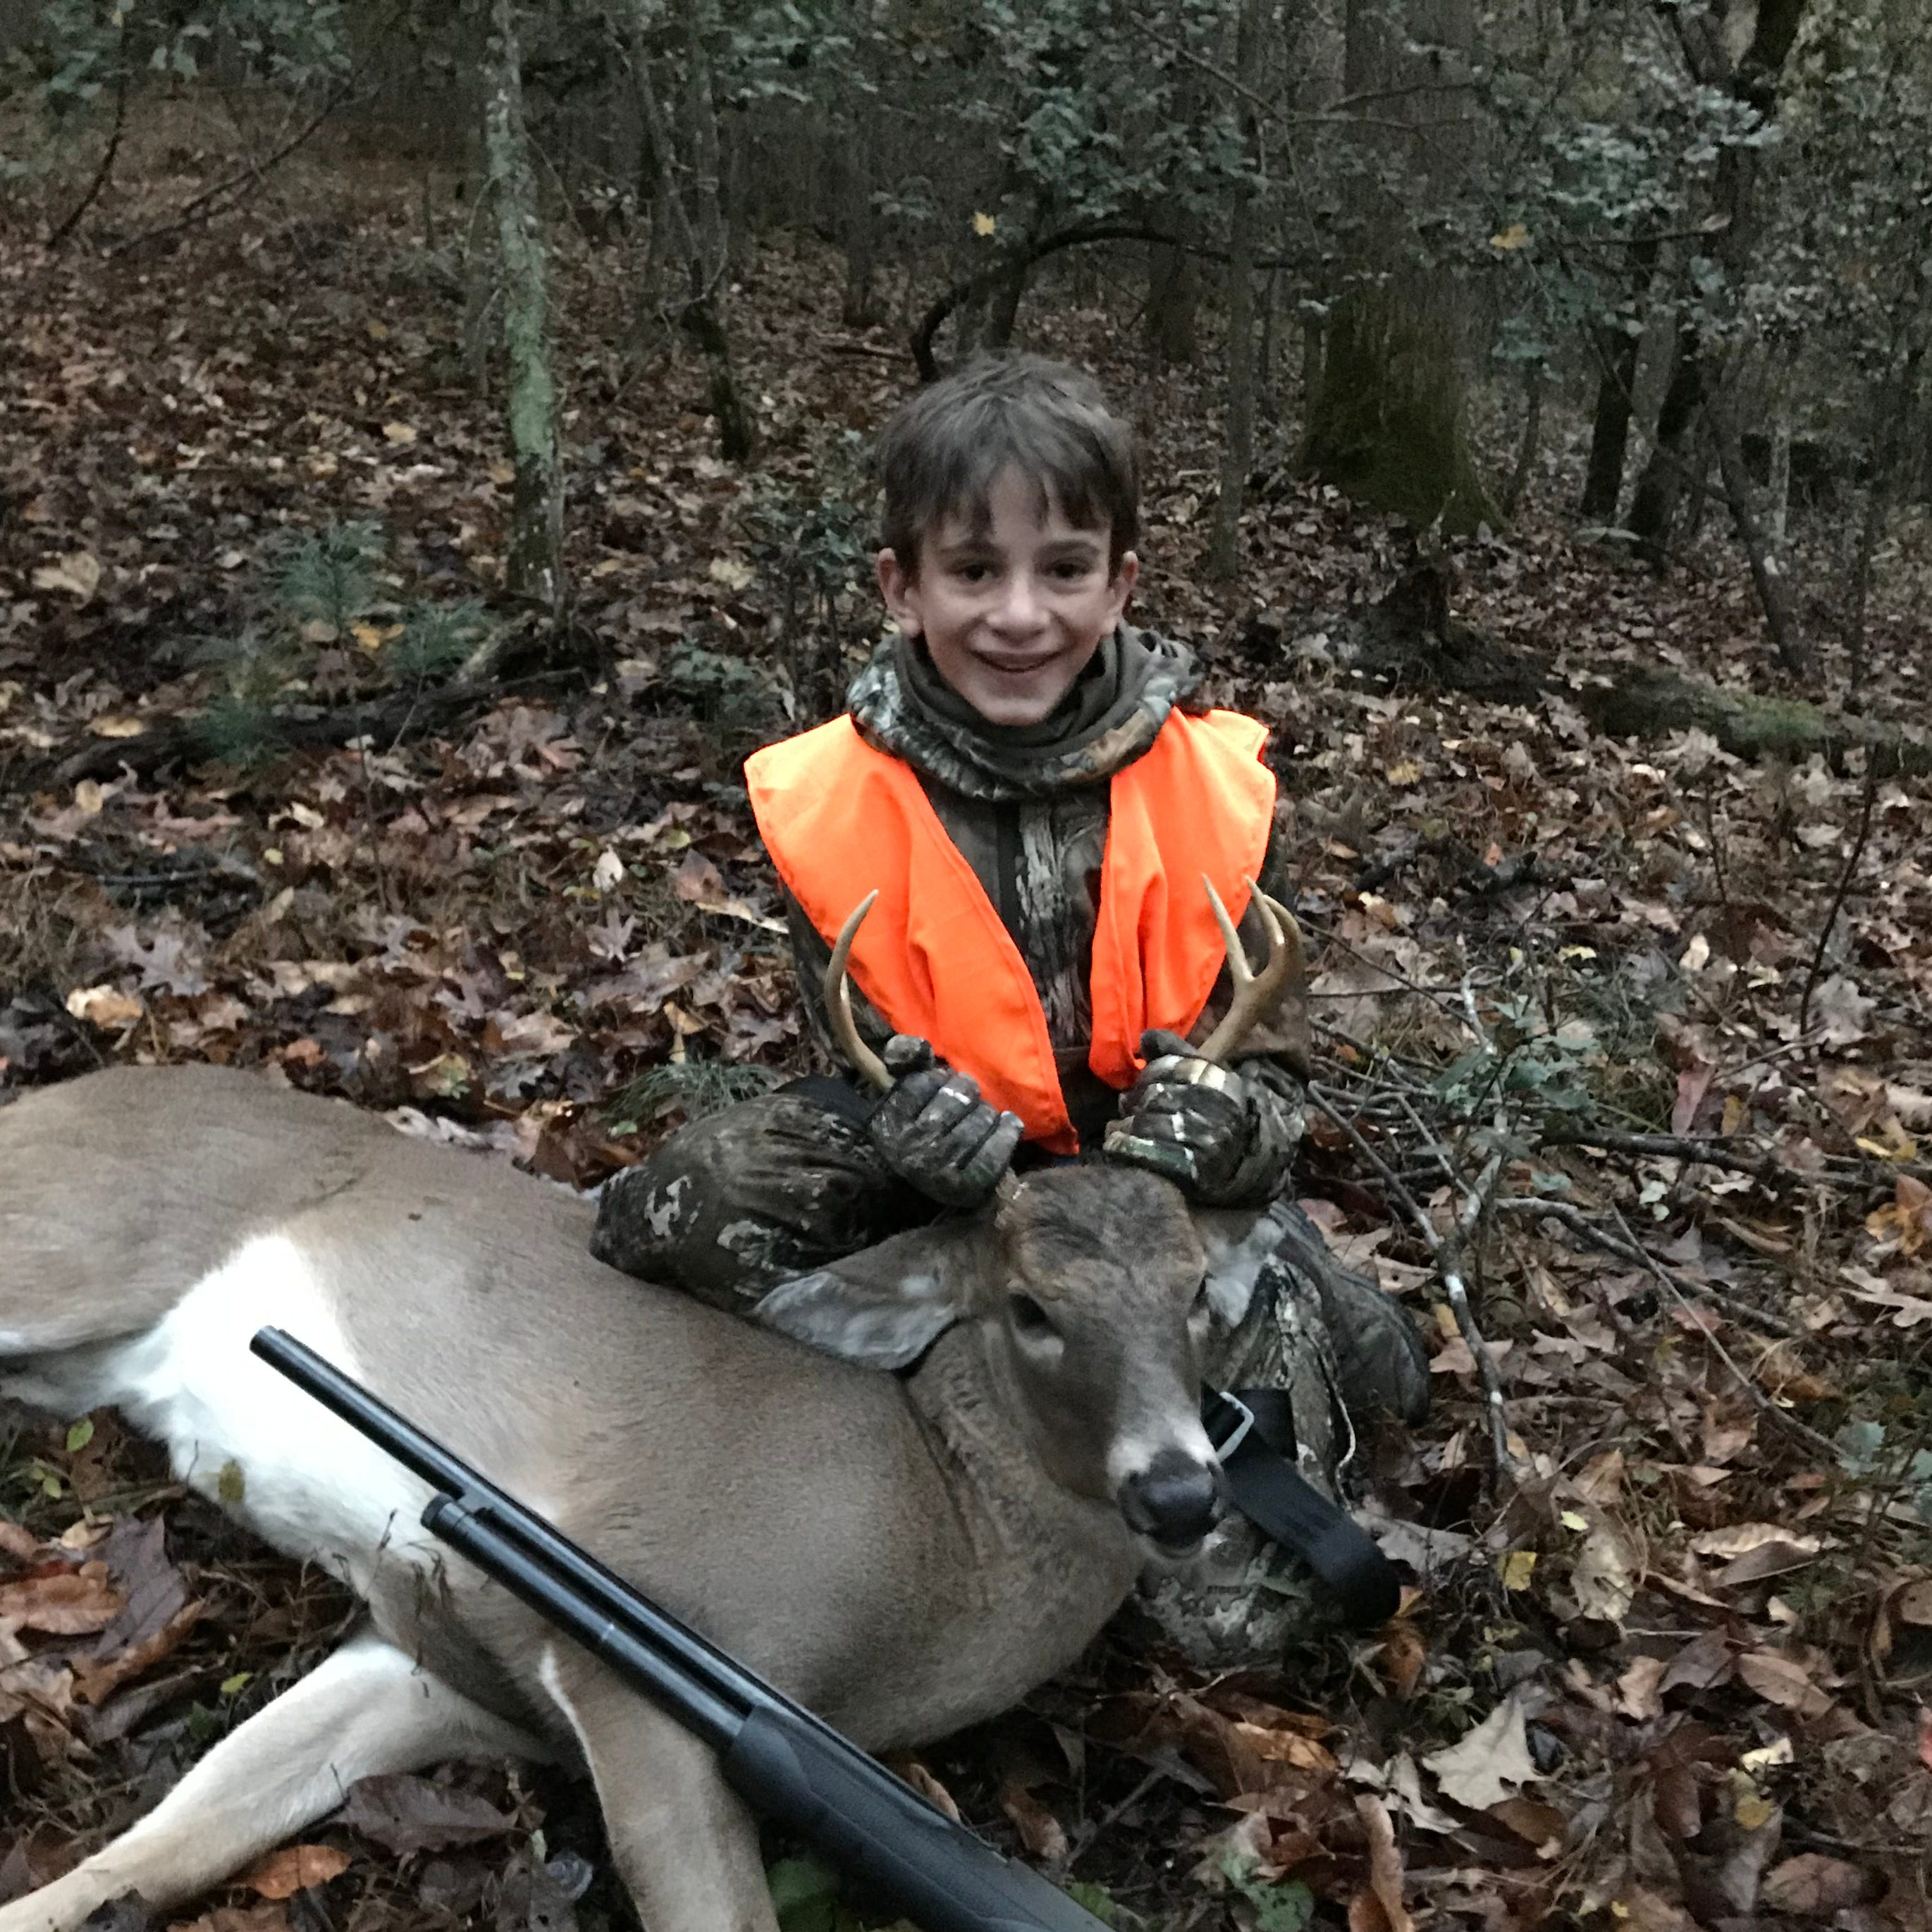 Father on son's first deer hunt: 'I hope this instills a lifelong appreciation of wildlife'